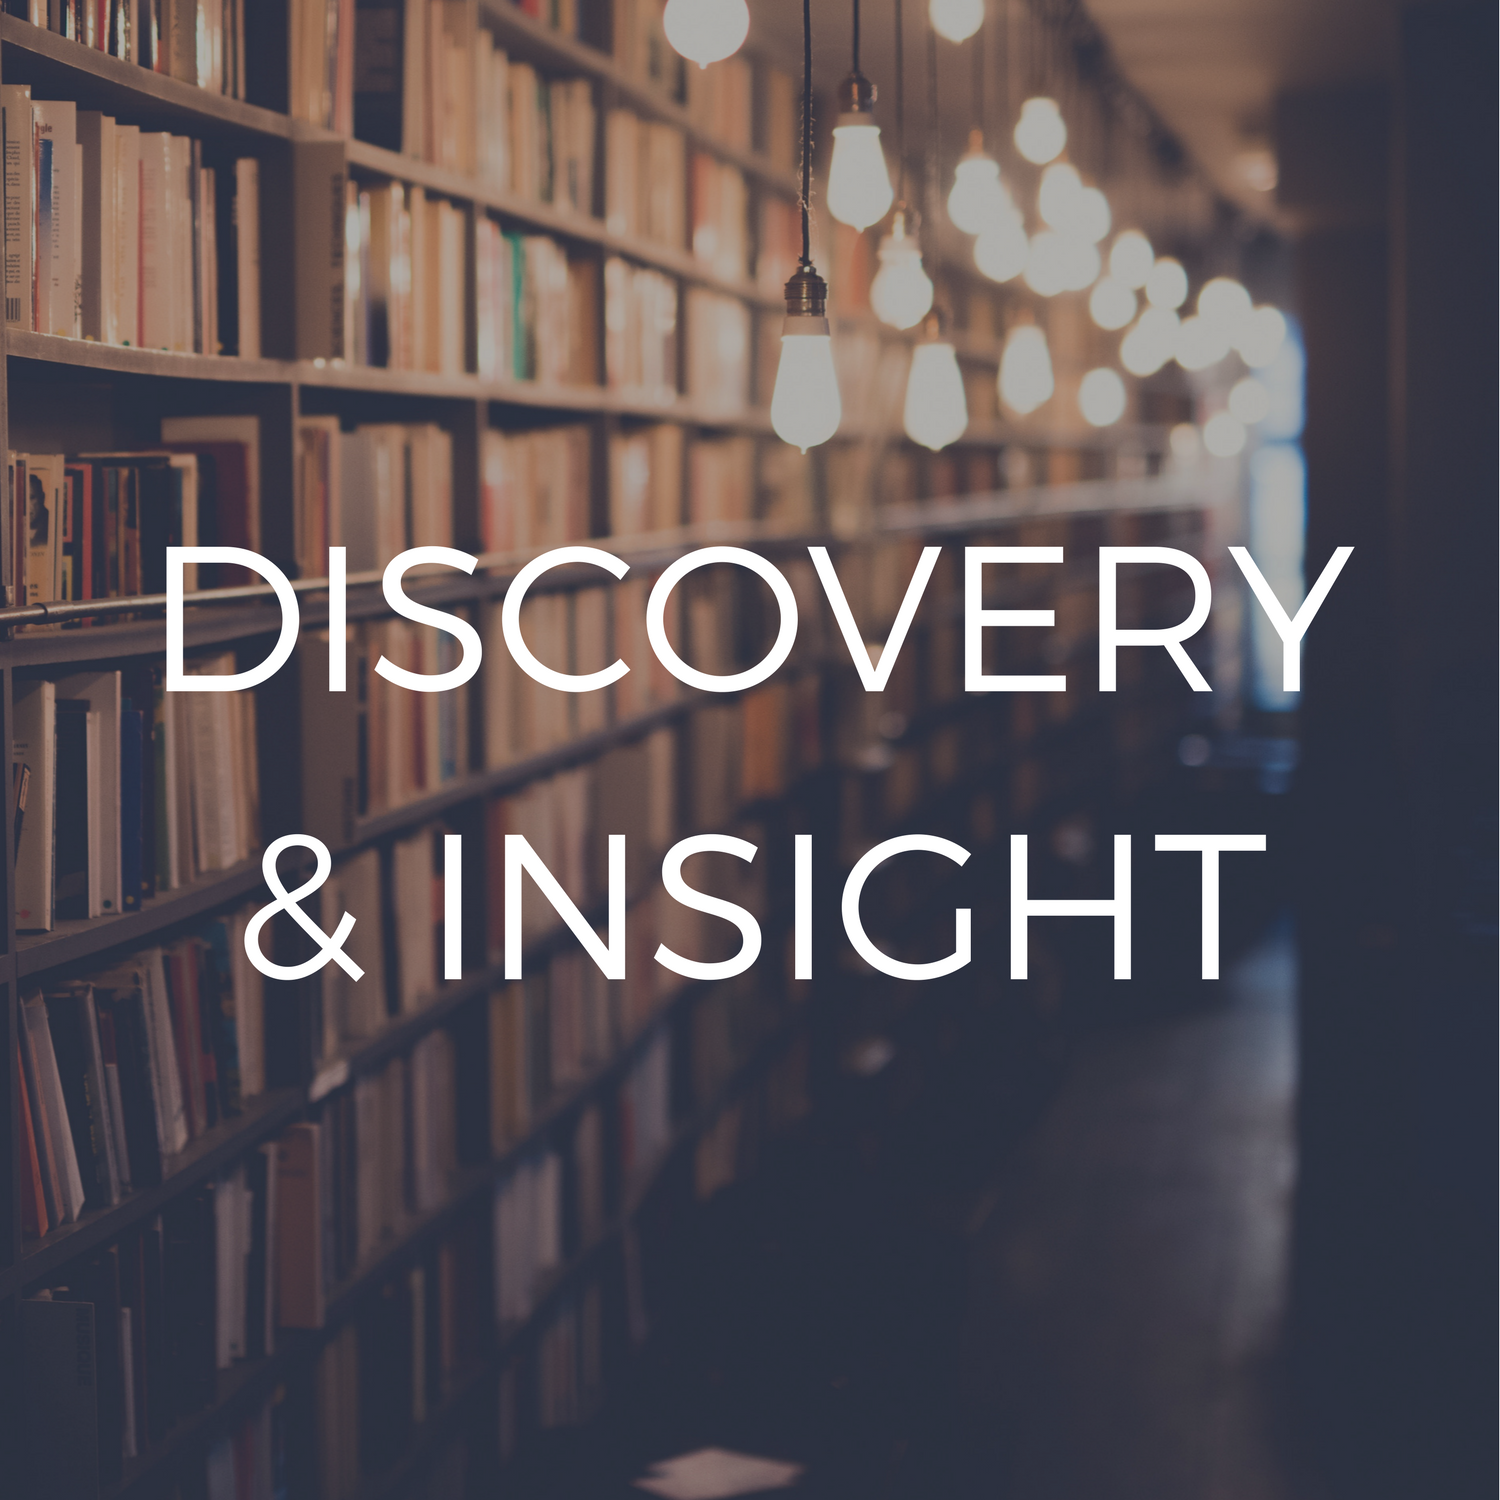 Discovery & Insight